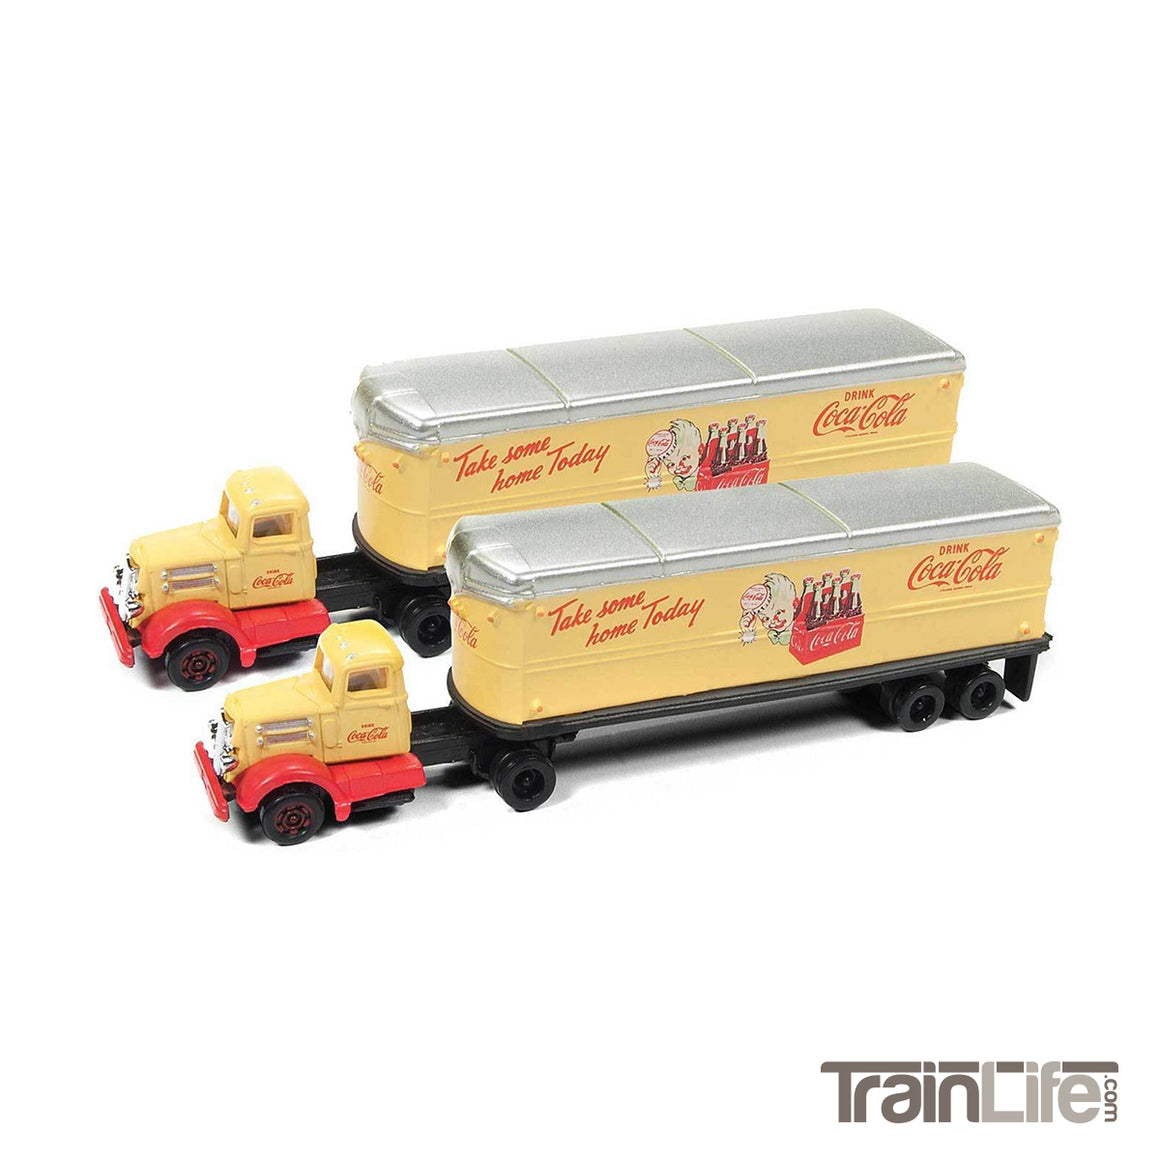 N Scale: WC22 Tractor & Trailer Set - Coca Cola - 2 Pack